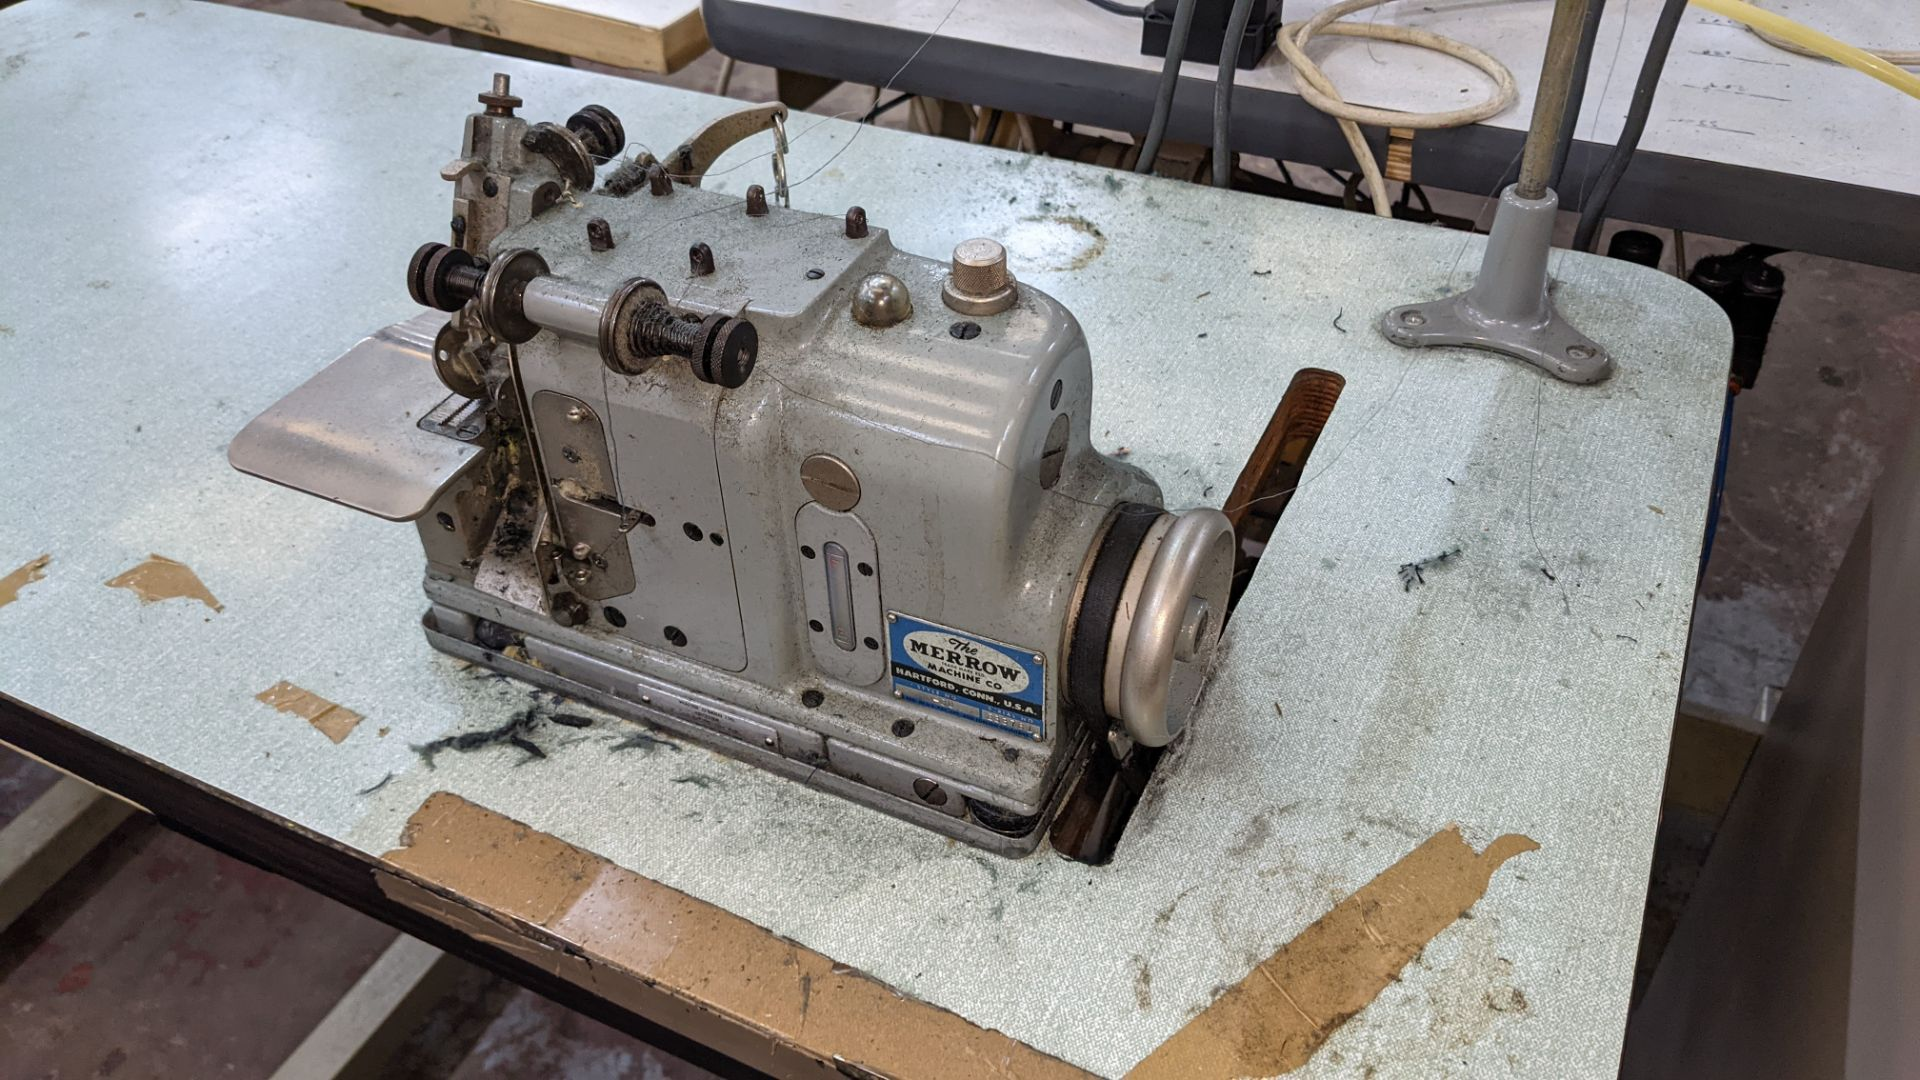 Merrow type M-3U narrow edge sewing machine - Image 4 of 13